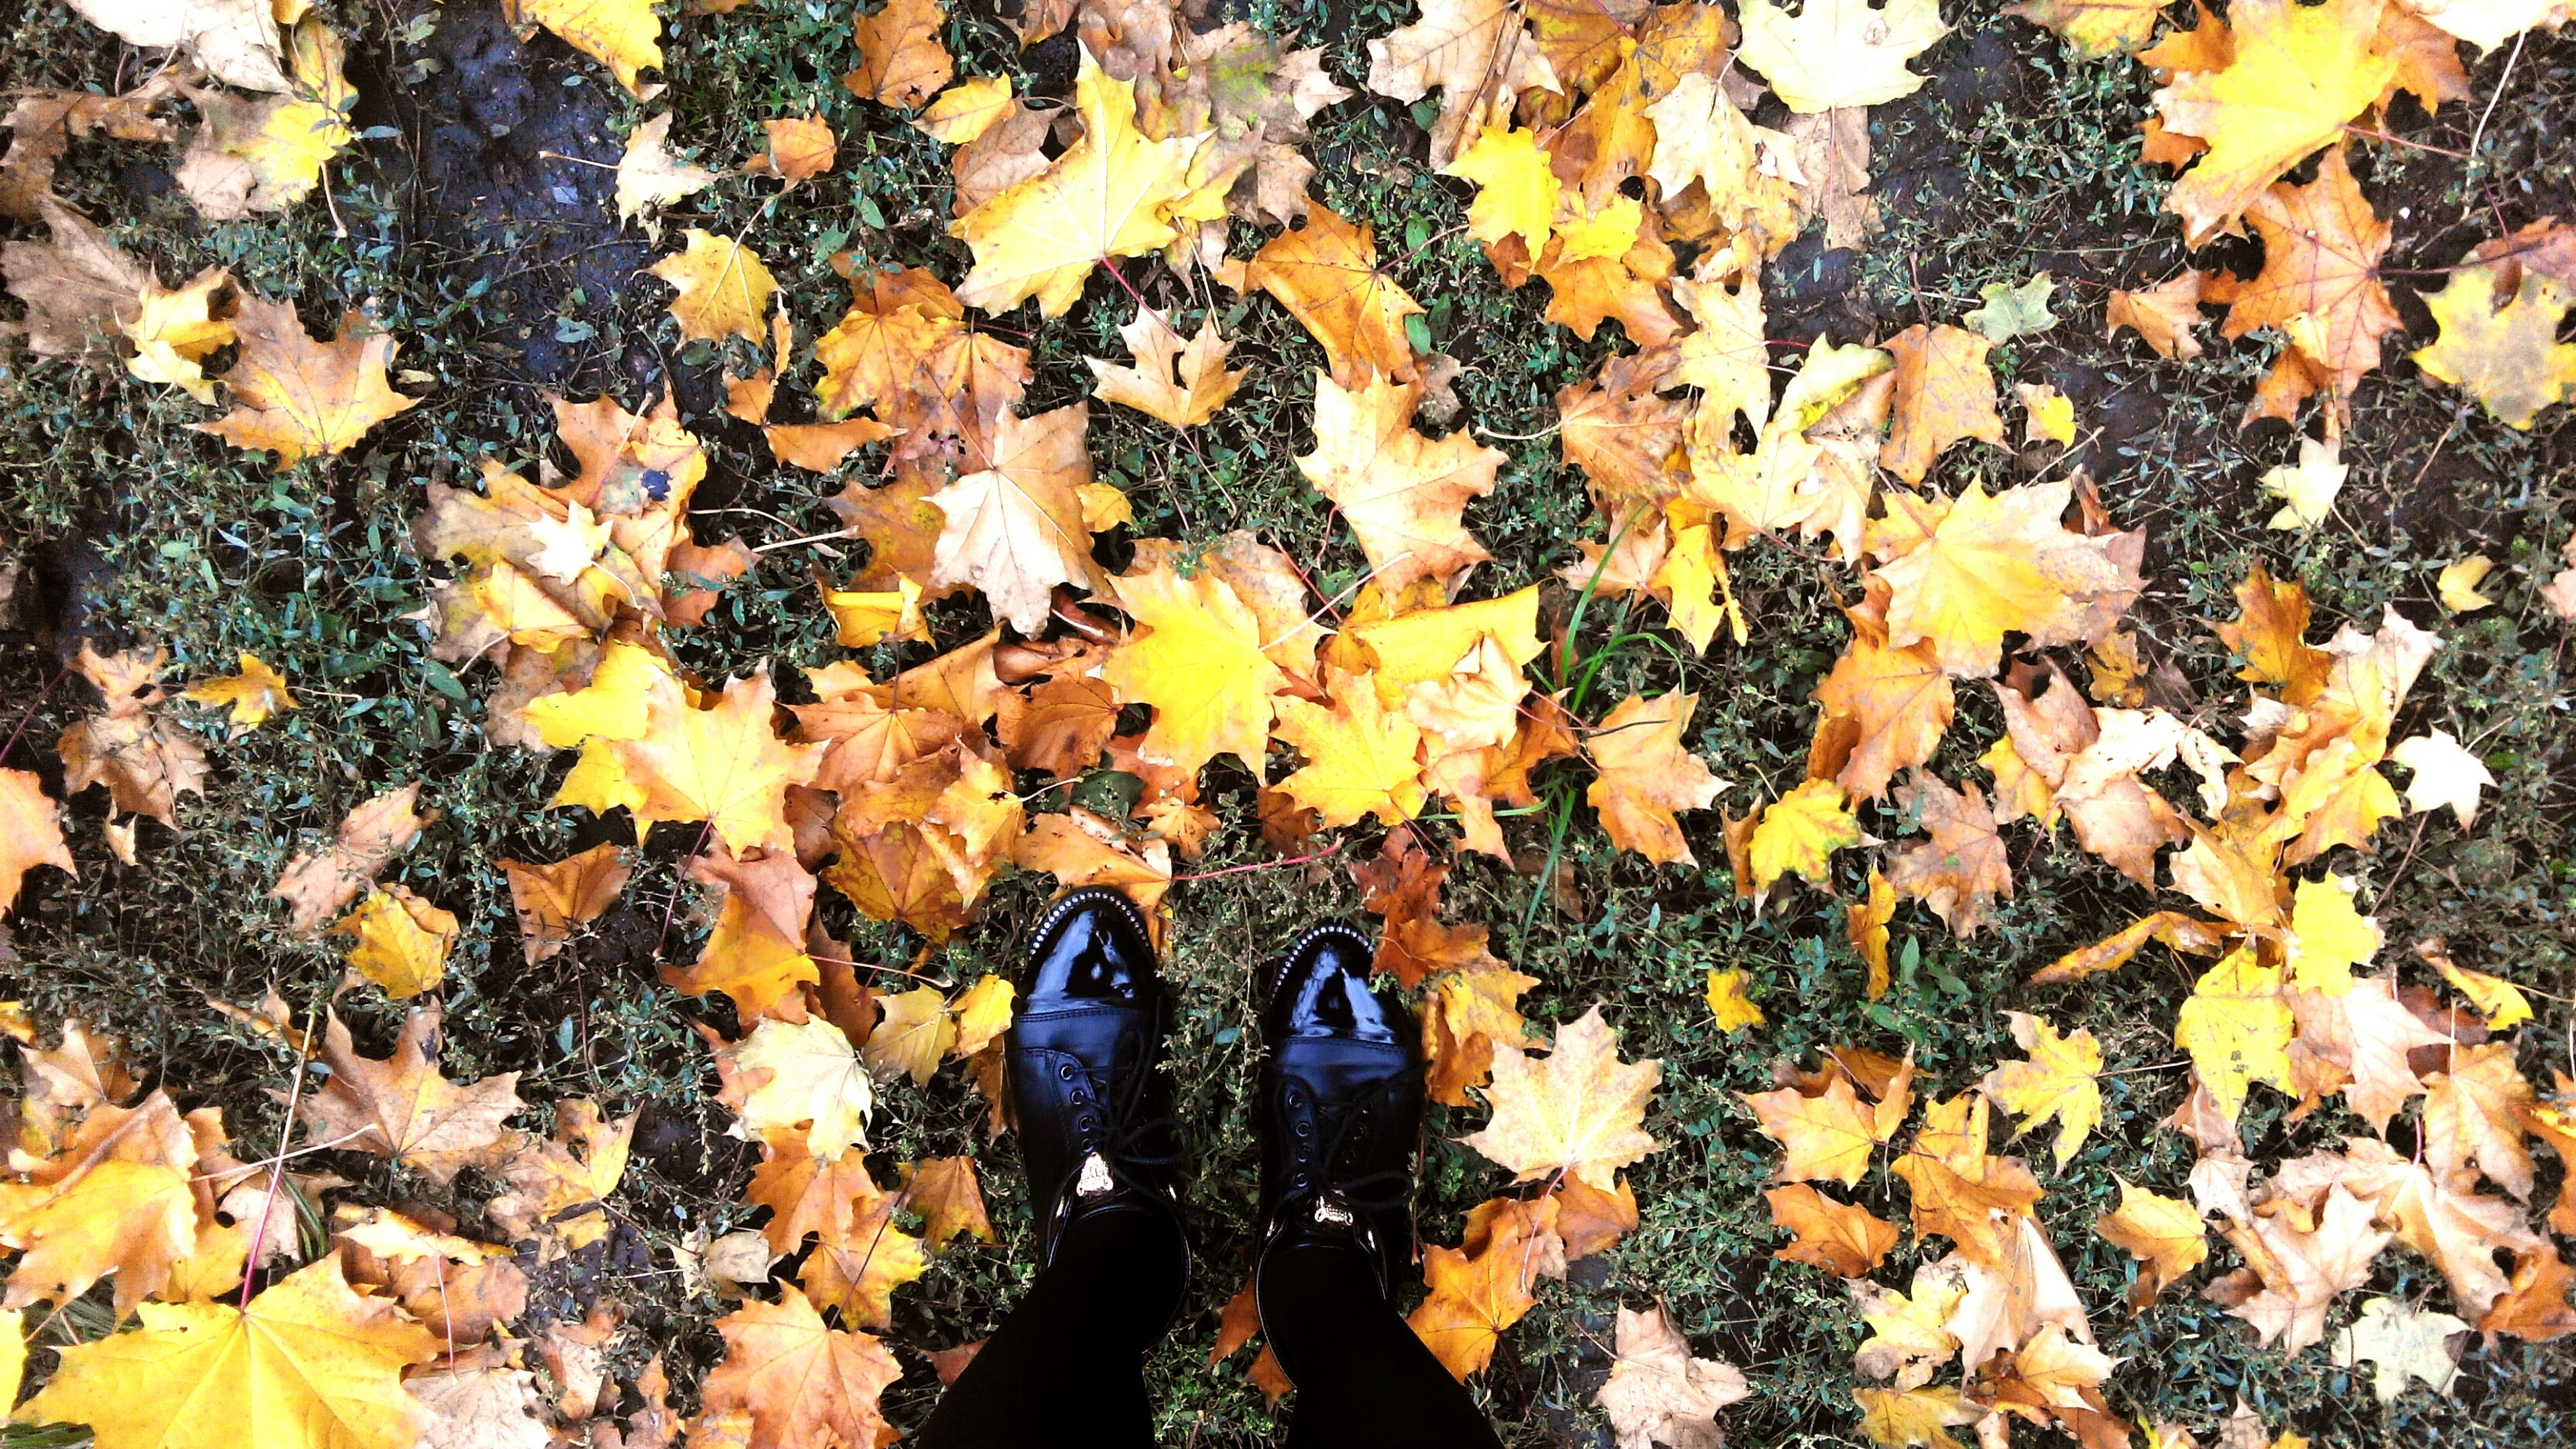 season, change, autumn, low section, leaf, person, personal perspective, shoe, standing, dry, high angle view, leaves, human foot, falling, covering, lifestyles, directly above, footwear, natural condition, leisure activity, abundance, fallen, maple leaf, field, day, yellow, nature, outdoors